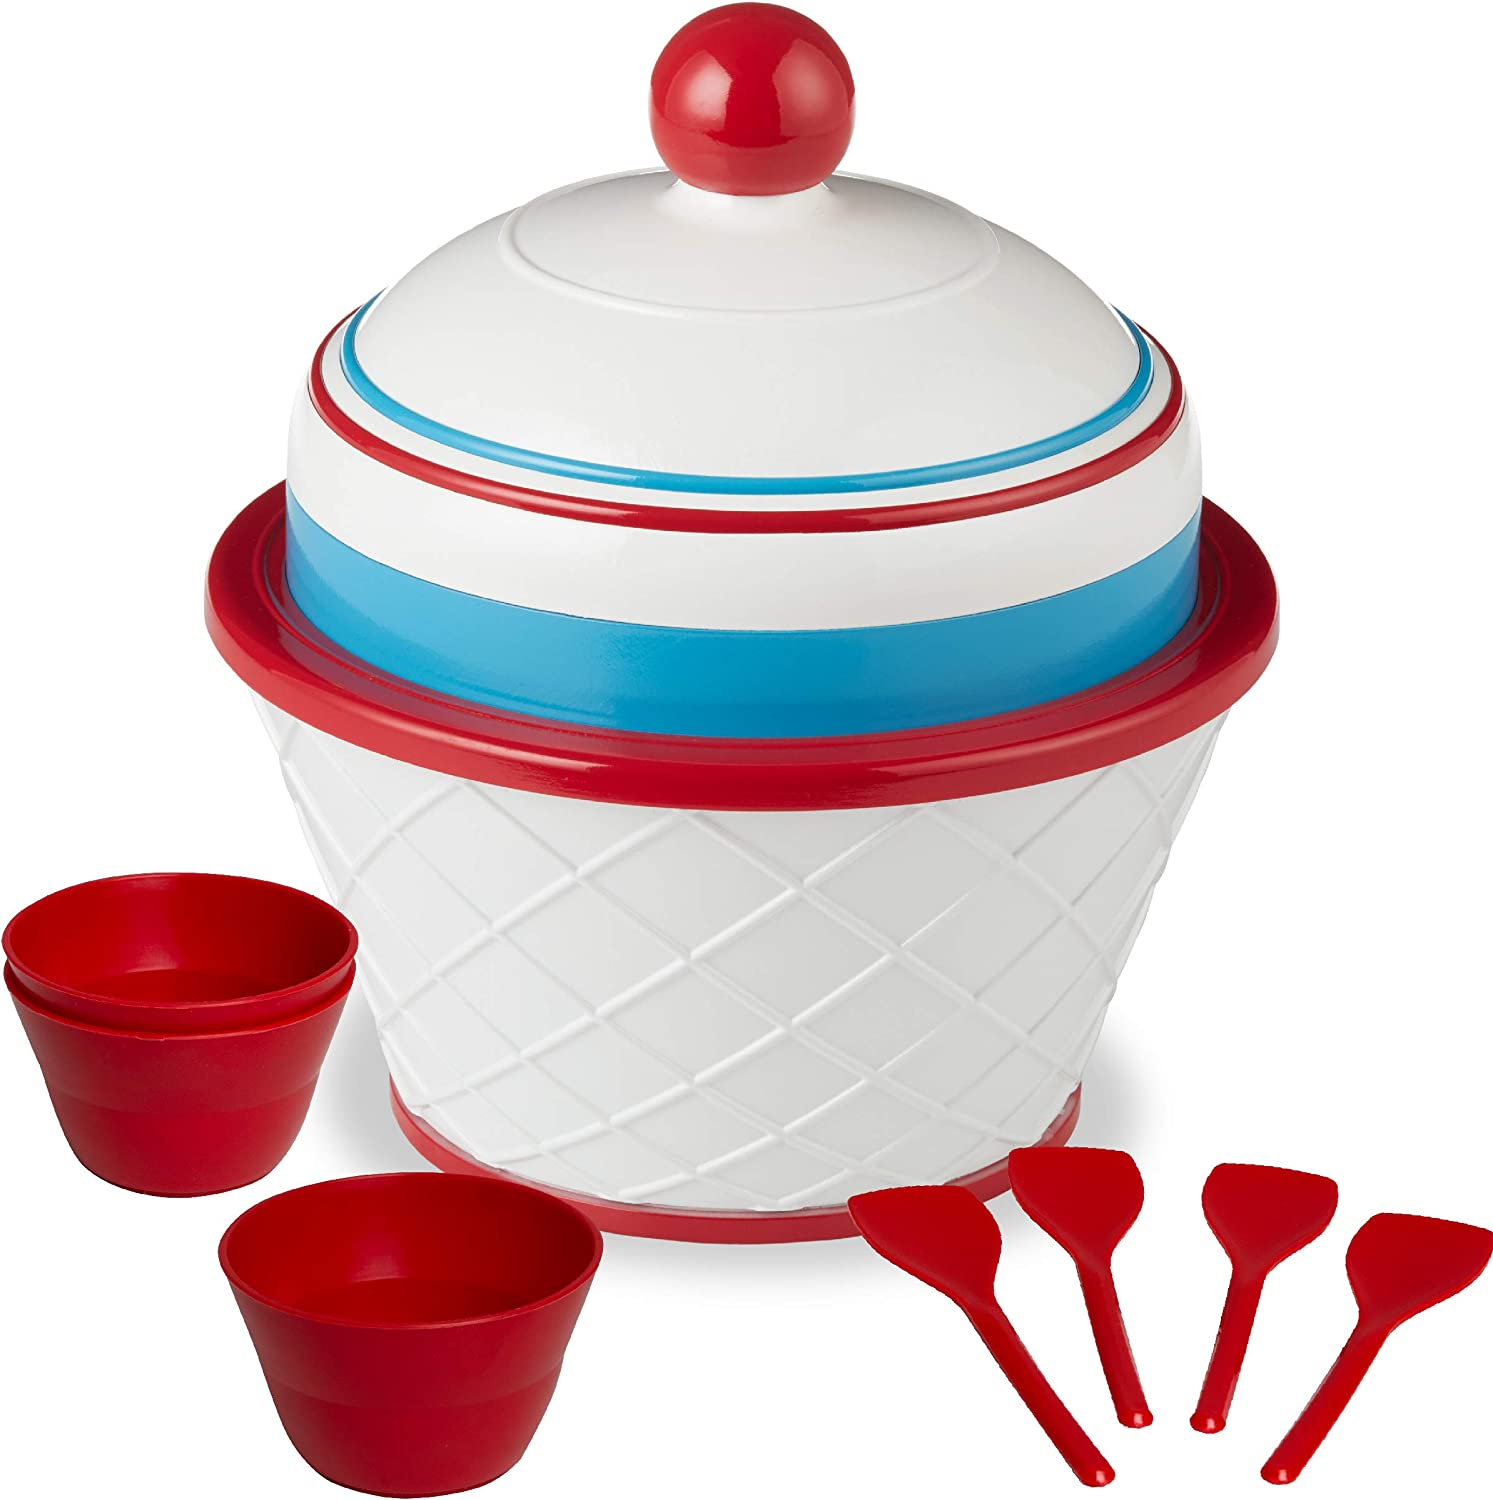 FAO Schwarz Motorized DIY Ice Cream Station with Double-Insulated Freezer Bowel and Electric Mixer, Includes Serving Bowls and Spoons, Make Your Favorite Frozen Sweet Treats, Fun Family Activity Set